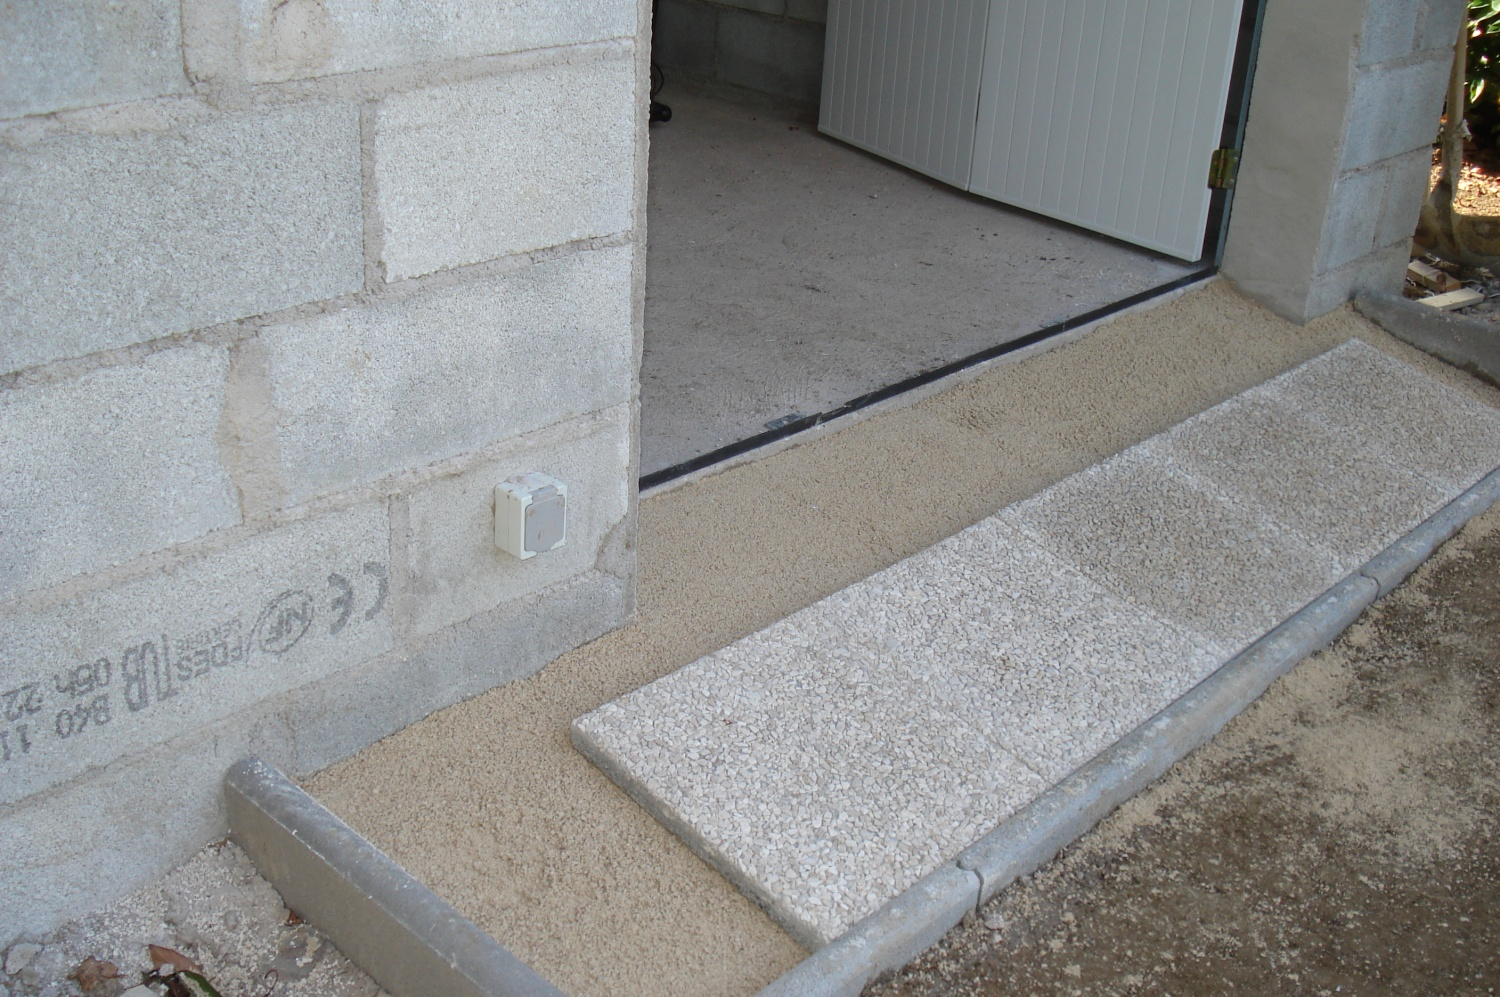 Le dallage du devant construction d 39 un abri de jardin for Poser des carreaux de platre sur du carrelage